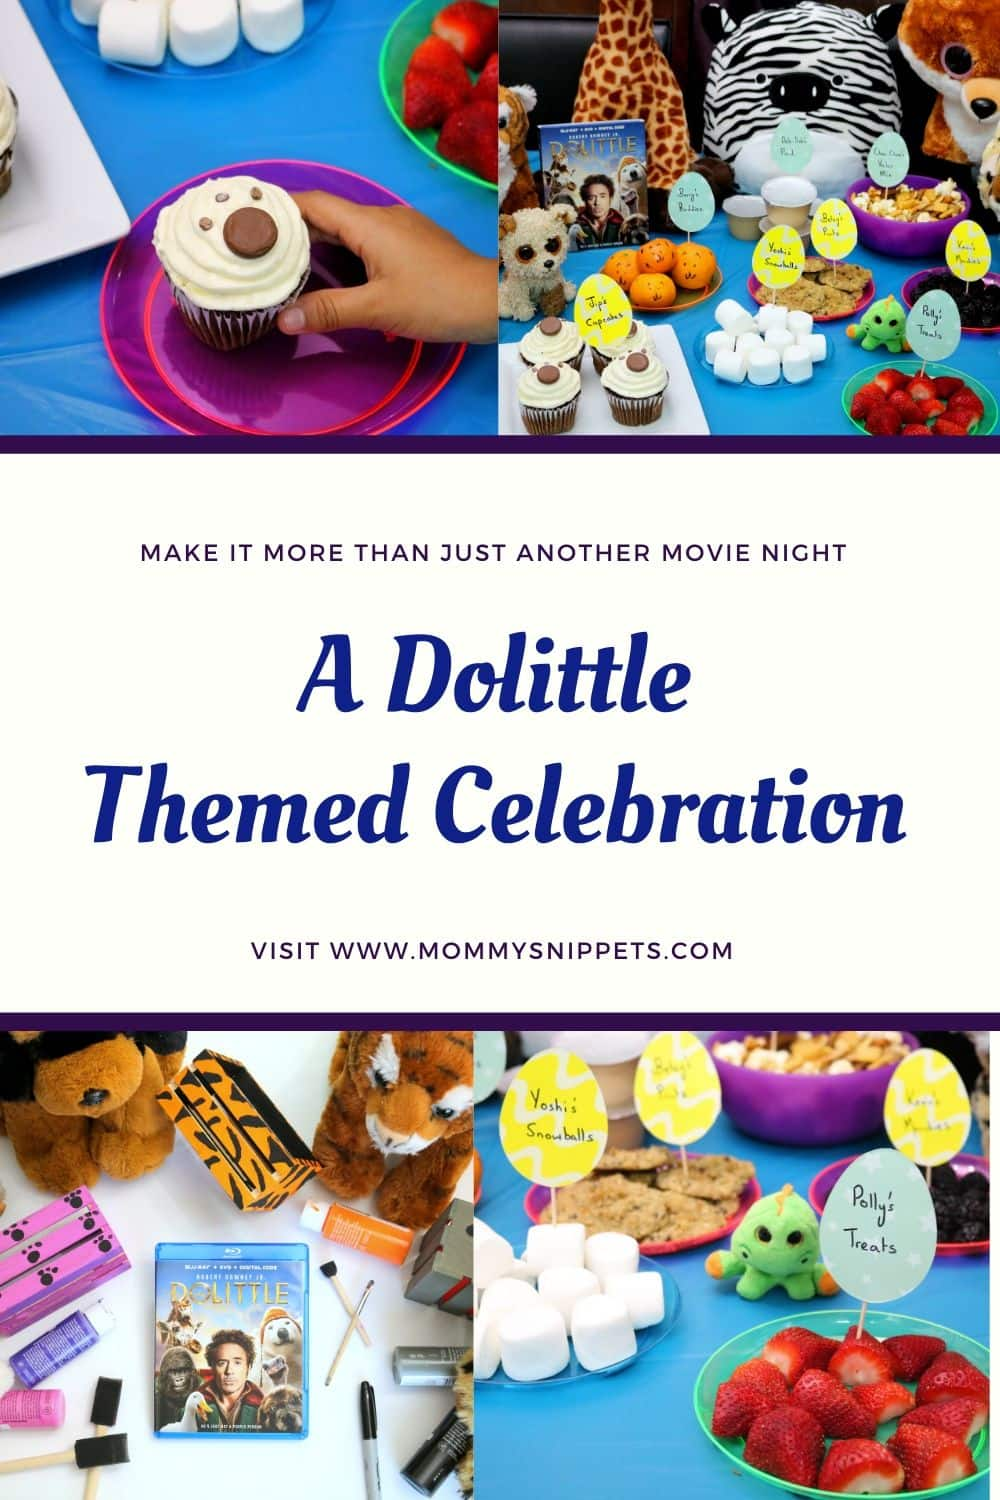 Make memories with the best Dolittle themed celebration- MommySnippets.com #DolittleAtWalmart #Pmedia #ad